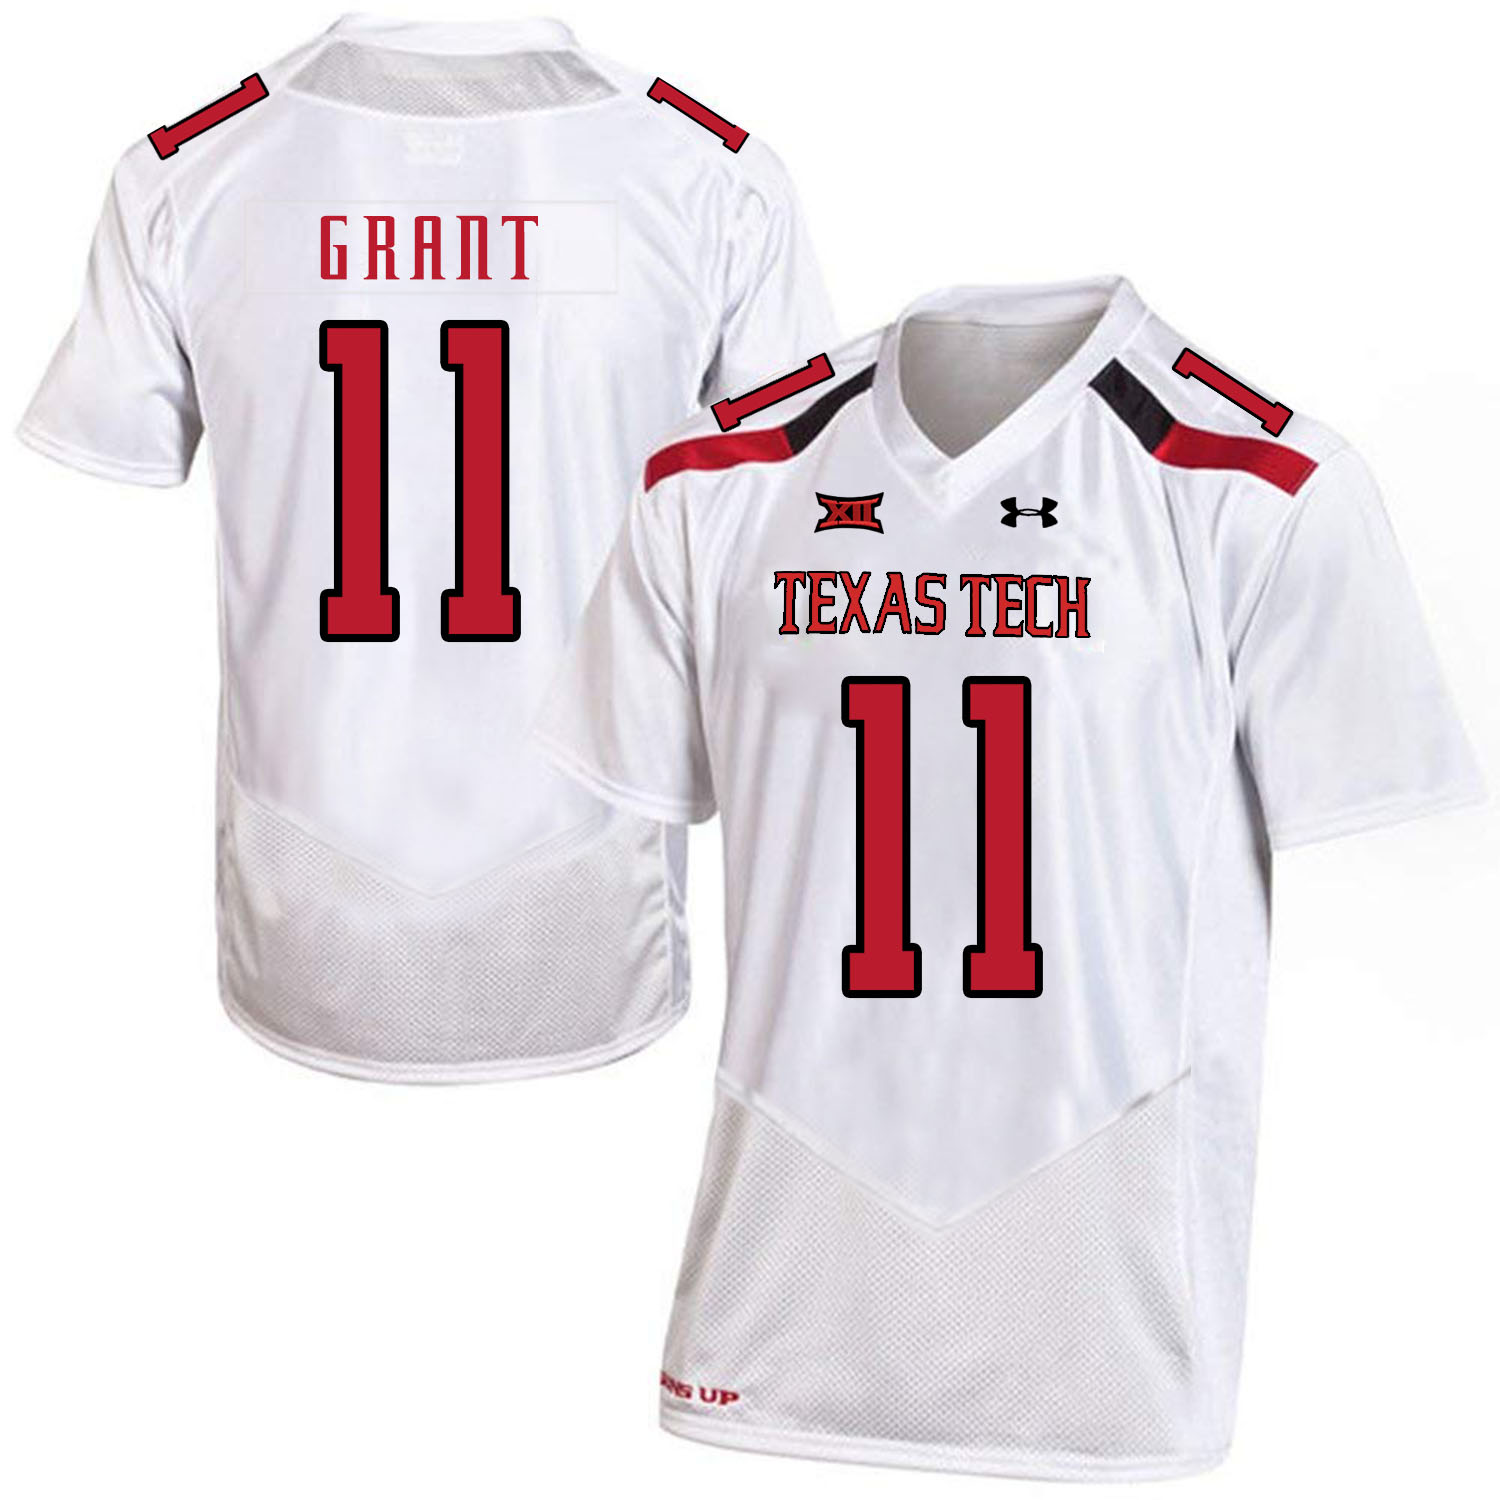 Texas Tech Red Raiders 11 Jakeem Grant White College Football Jersey